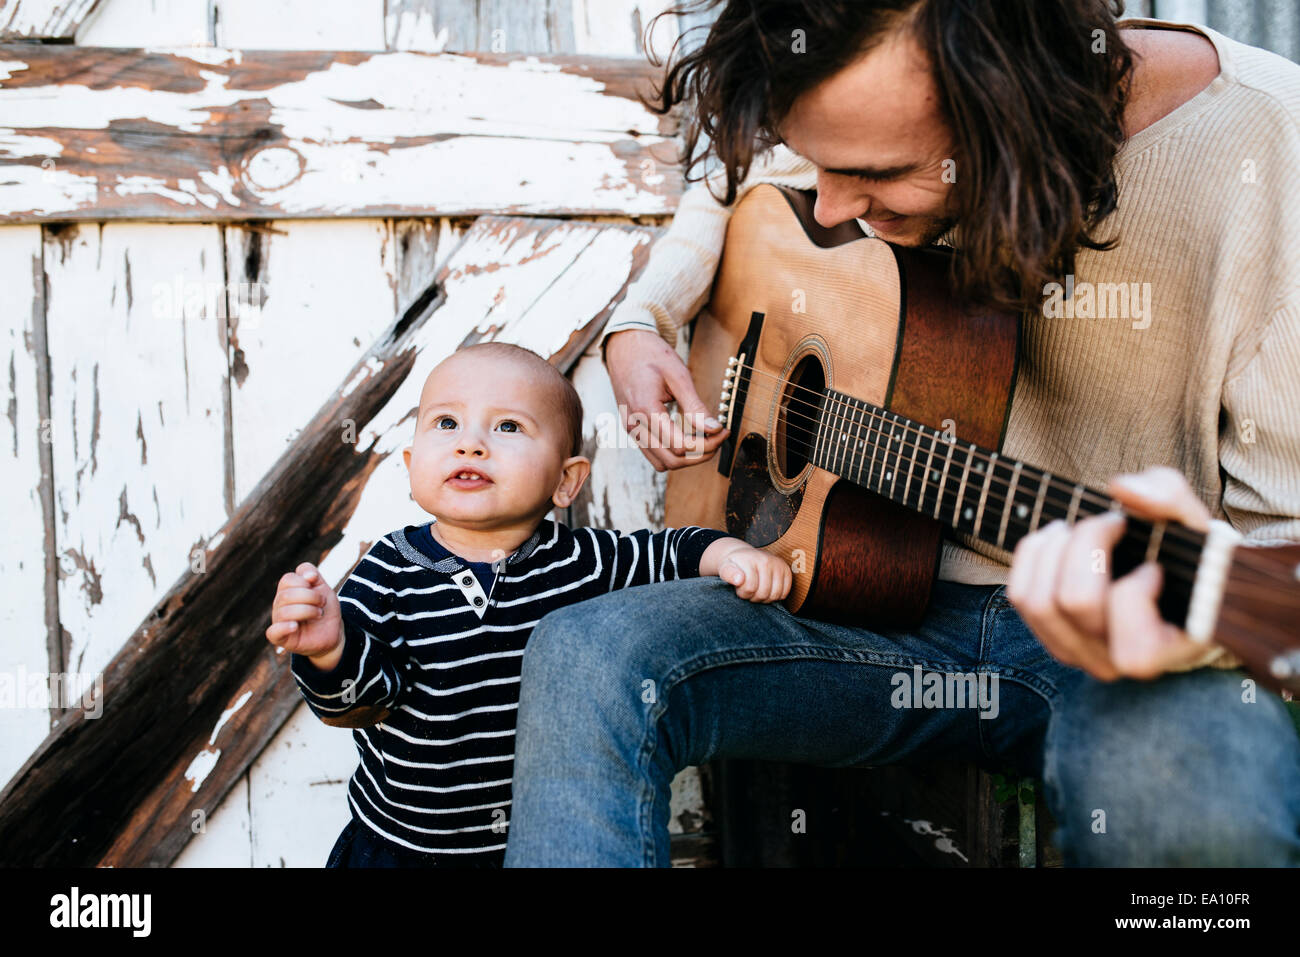 Father entertaining son with guitar - Stock Image